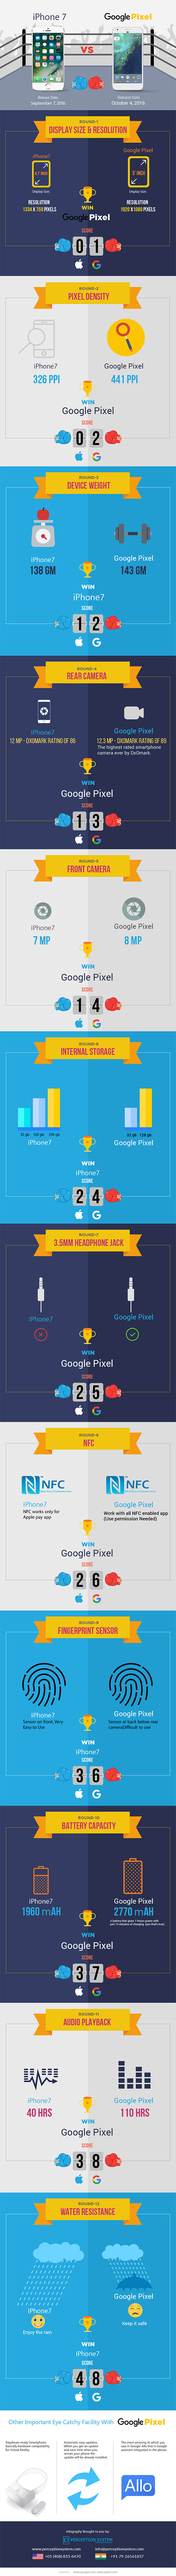 infographic-iphone-7-vs-google-phone